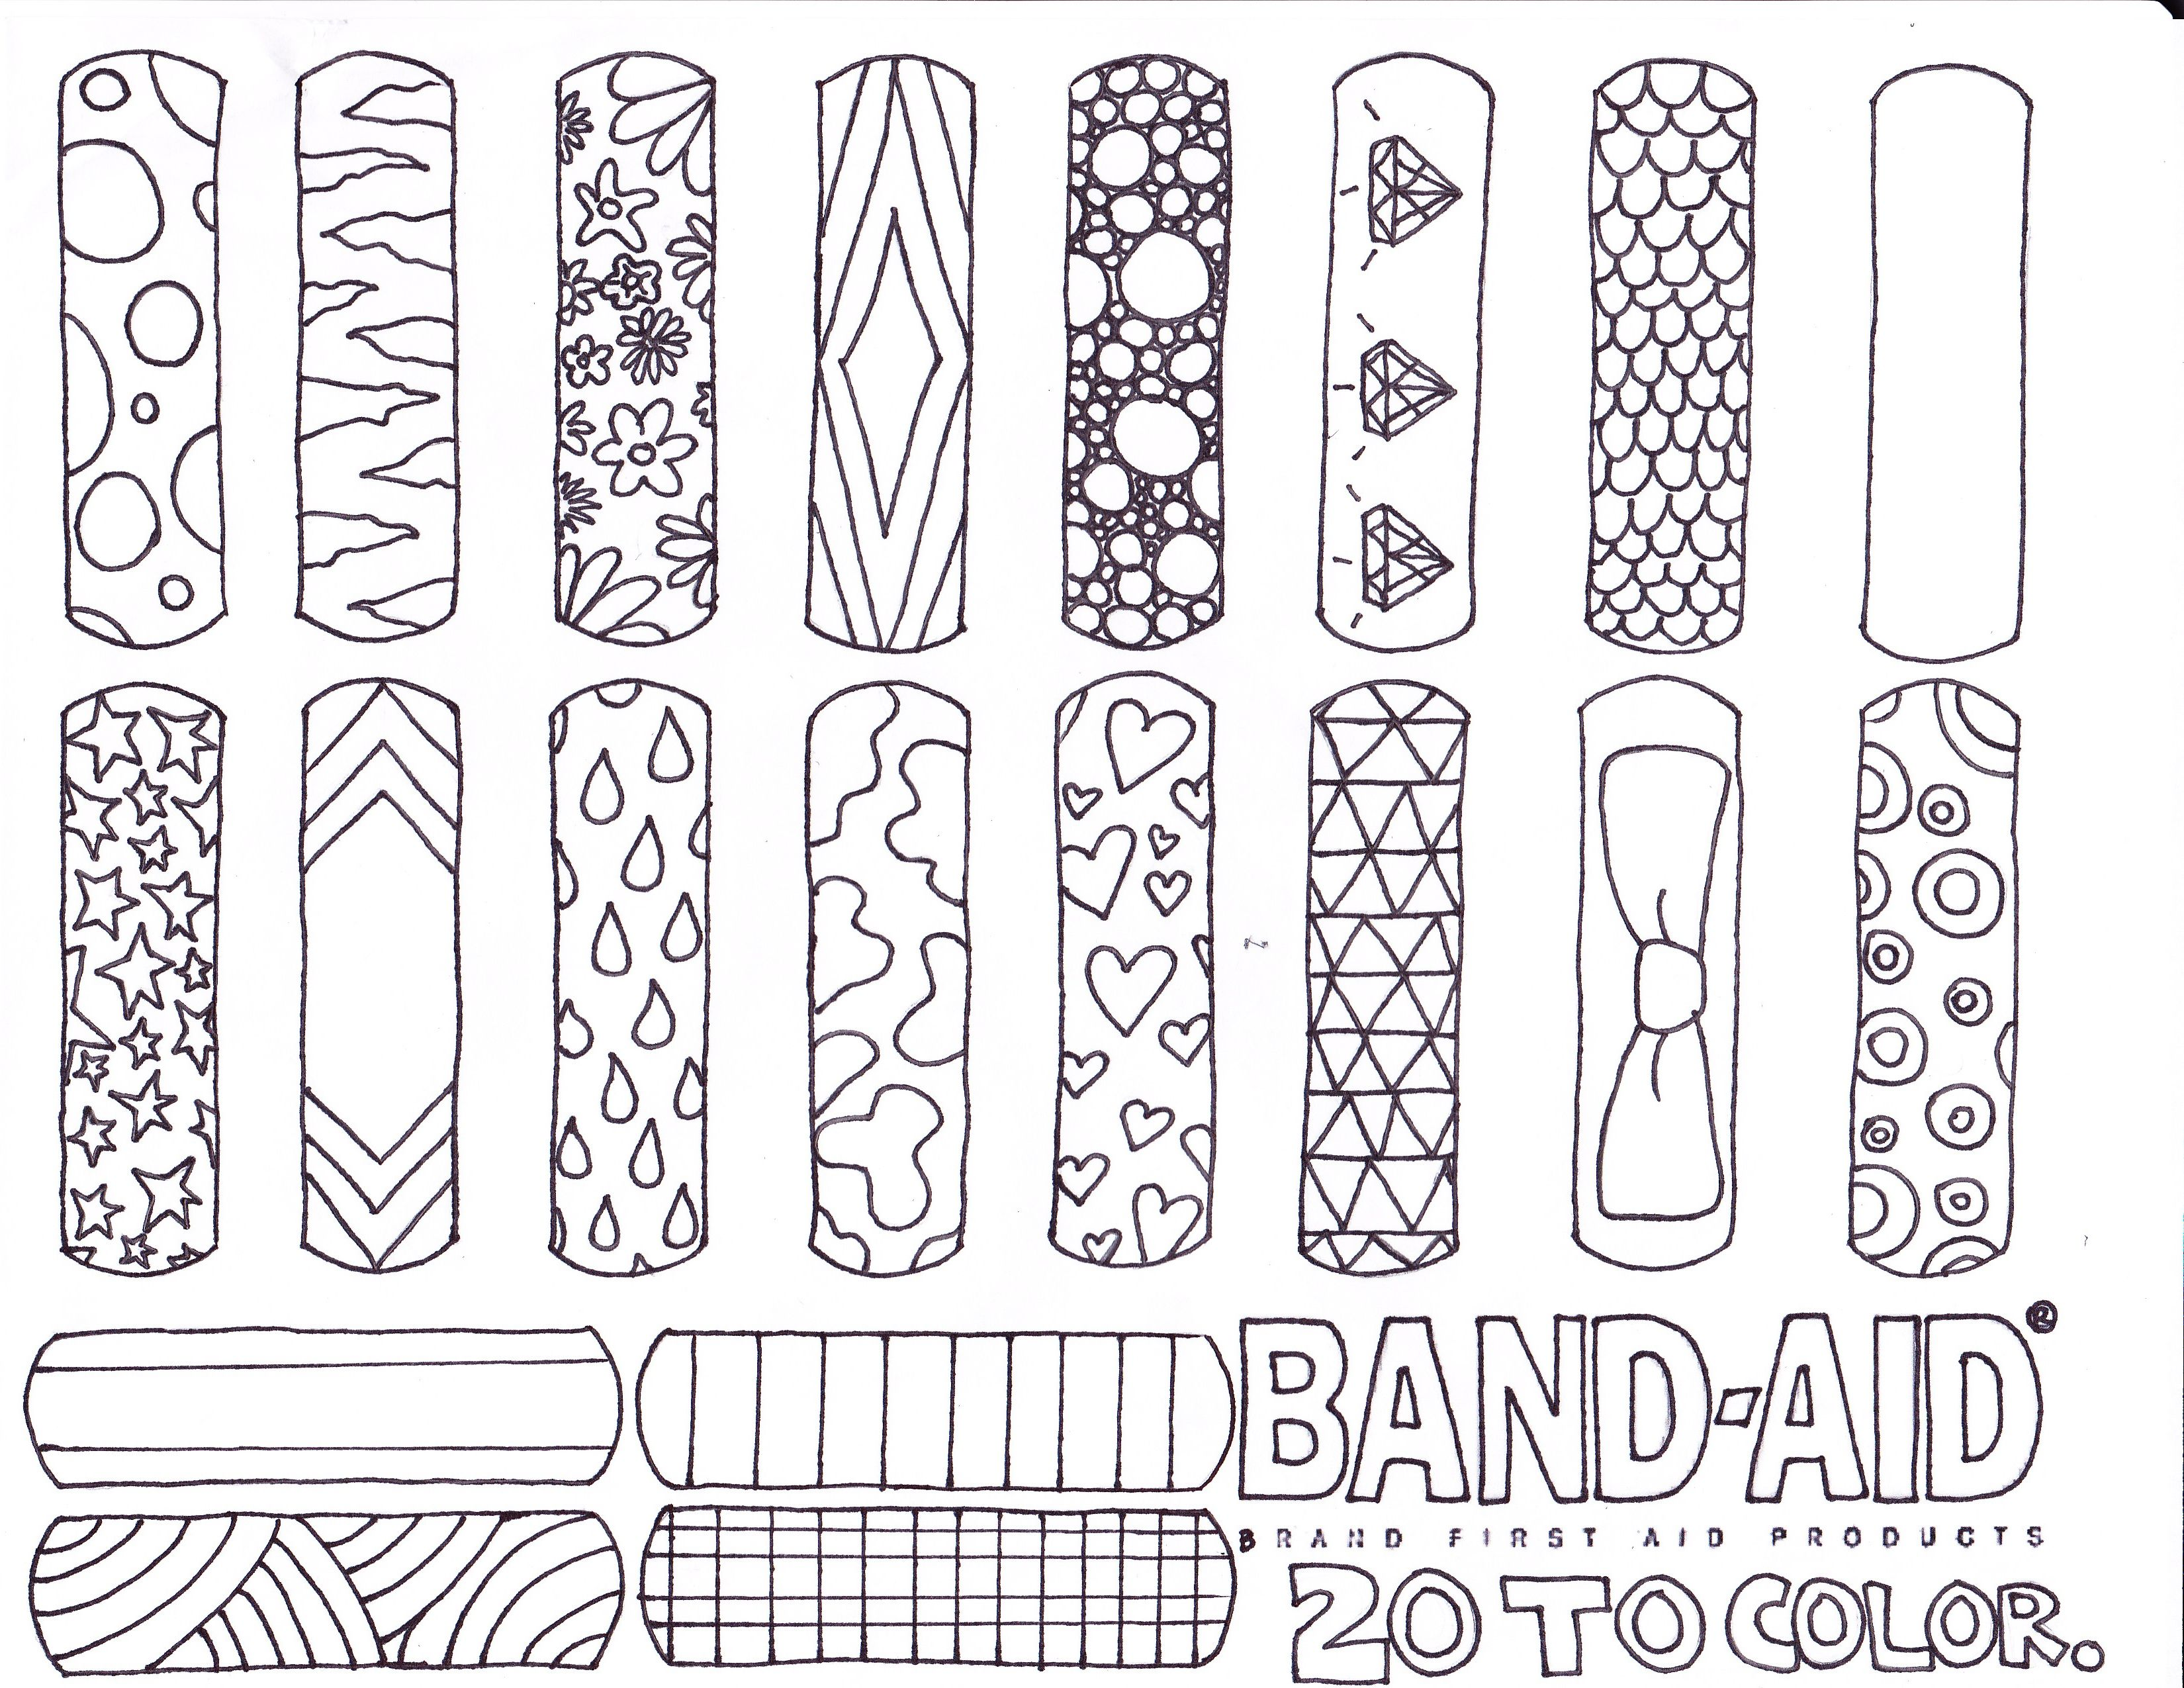 Worksheets First Aid Worksheets For Kids challenging coloring pages page band aid invented year round sun safety